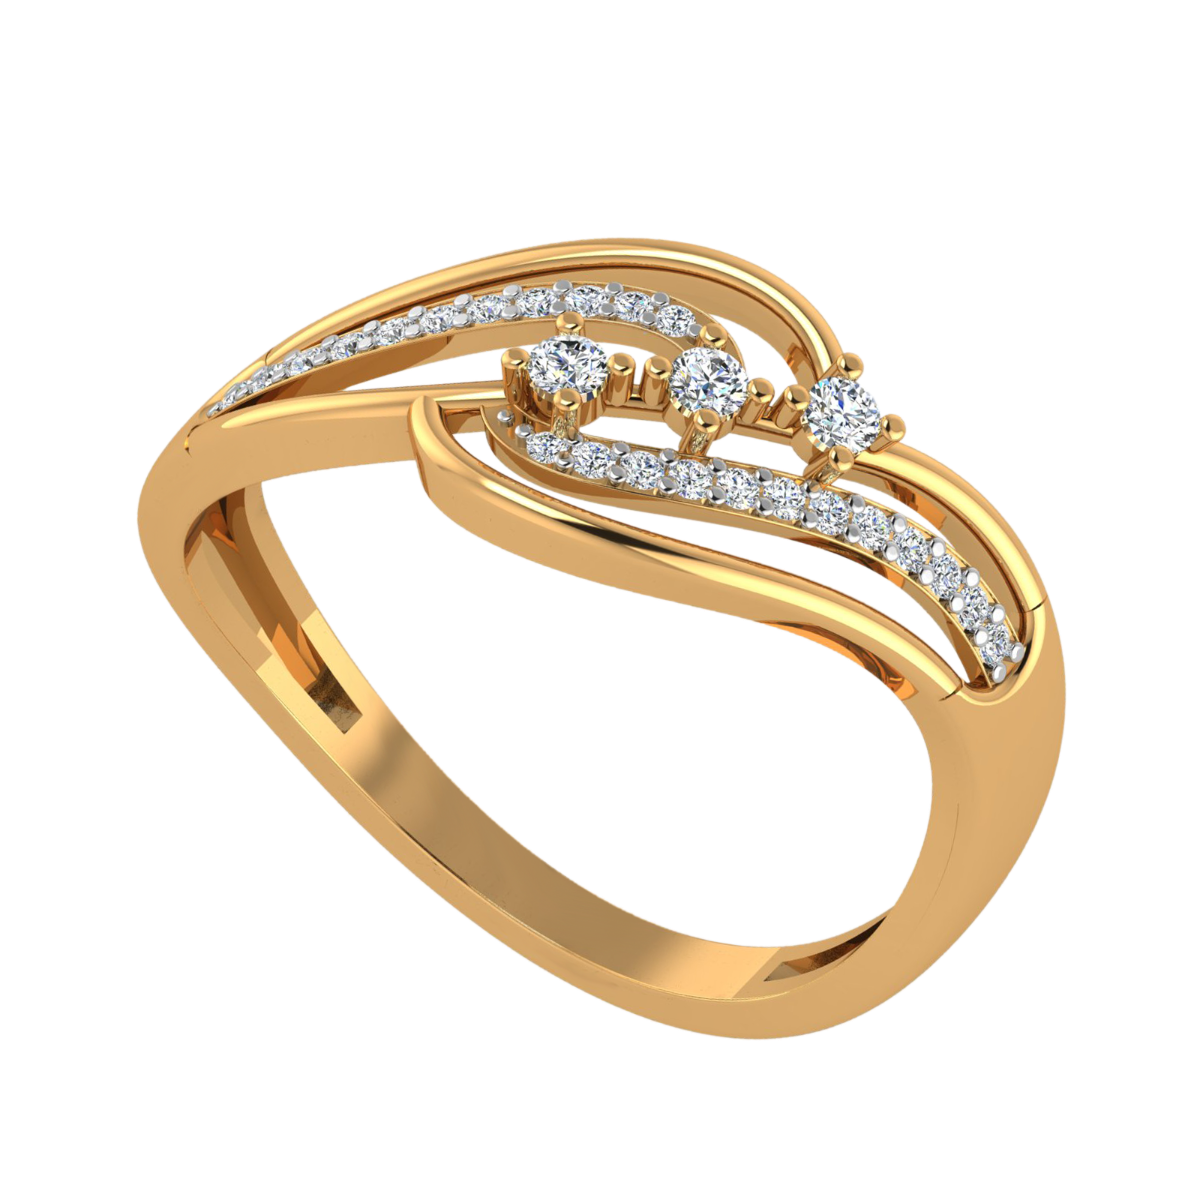 The Resol Diamond Ring